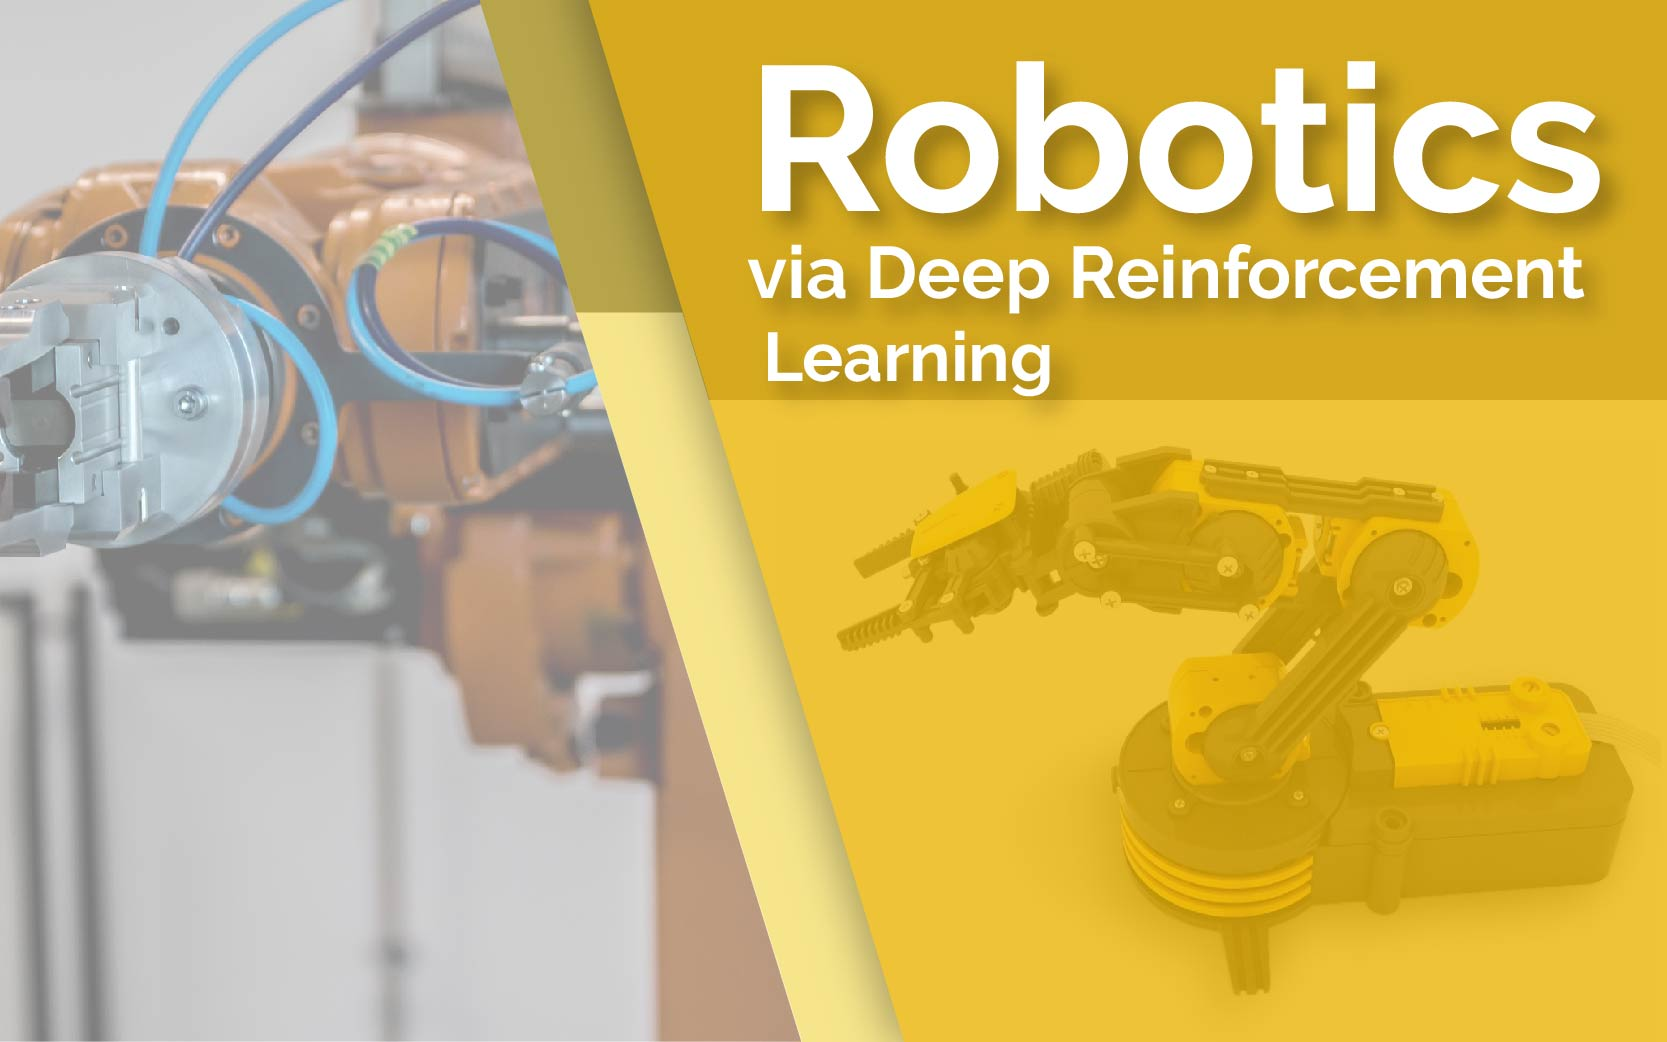 Robotics using Deep Reinforcement Learning